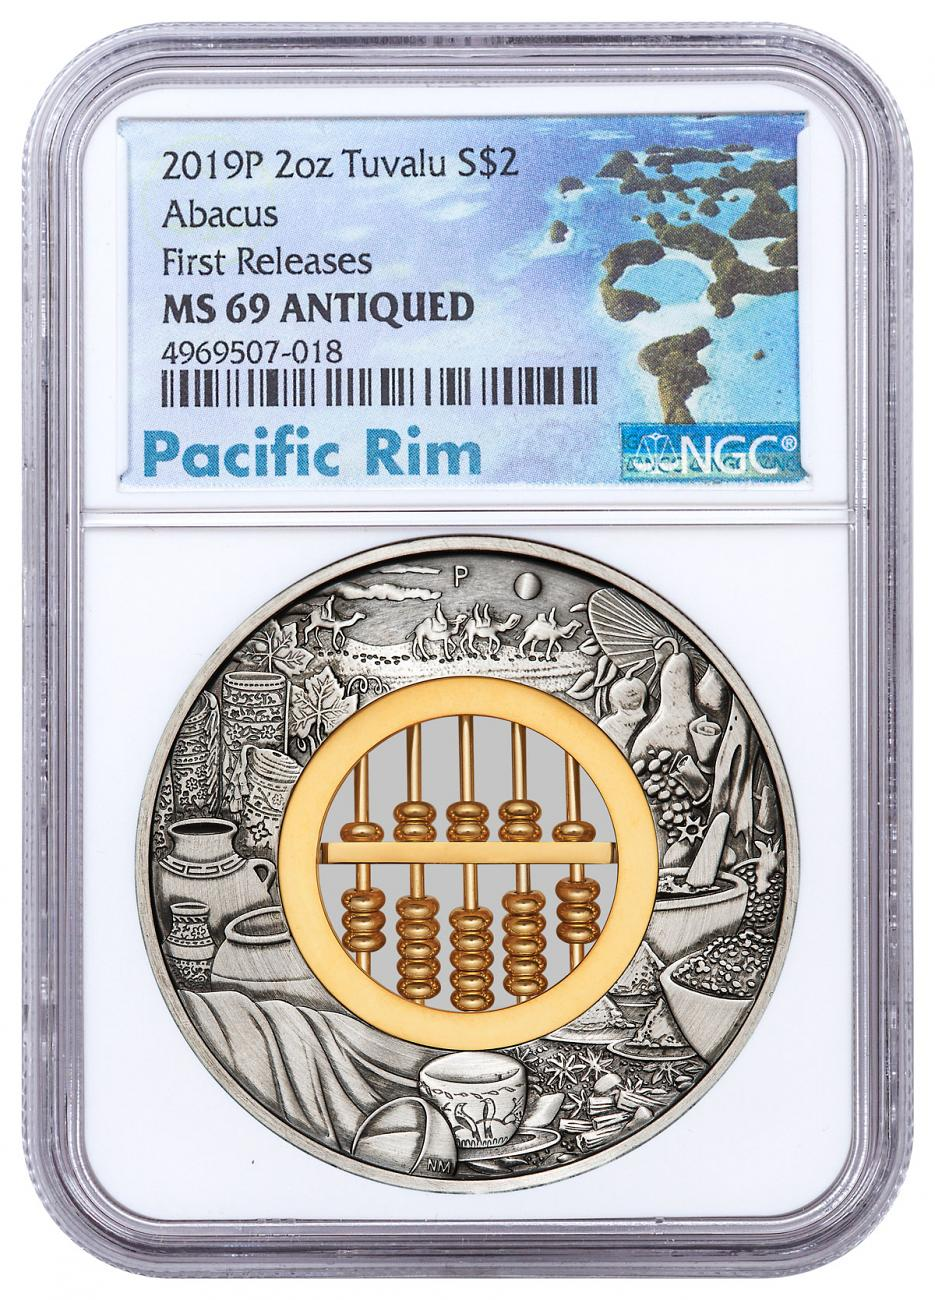 2019-P Tuvalu Abacus 2 oz Silver $2 Coin NGC MS69 FR Pacific Rim Label